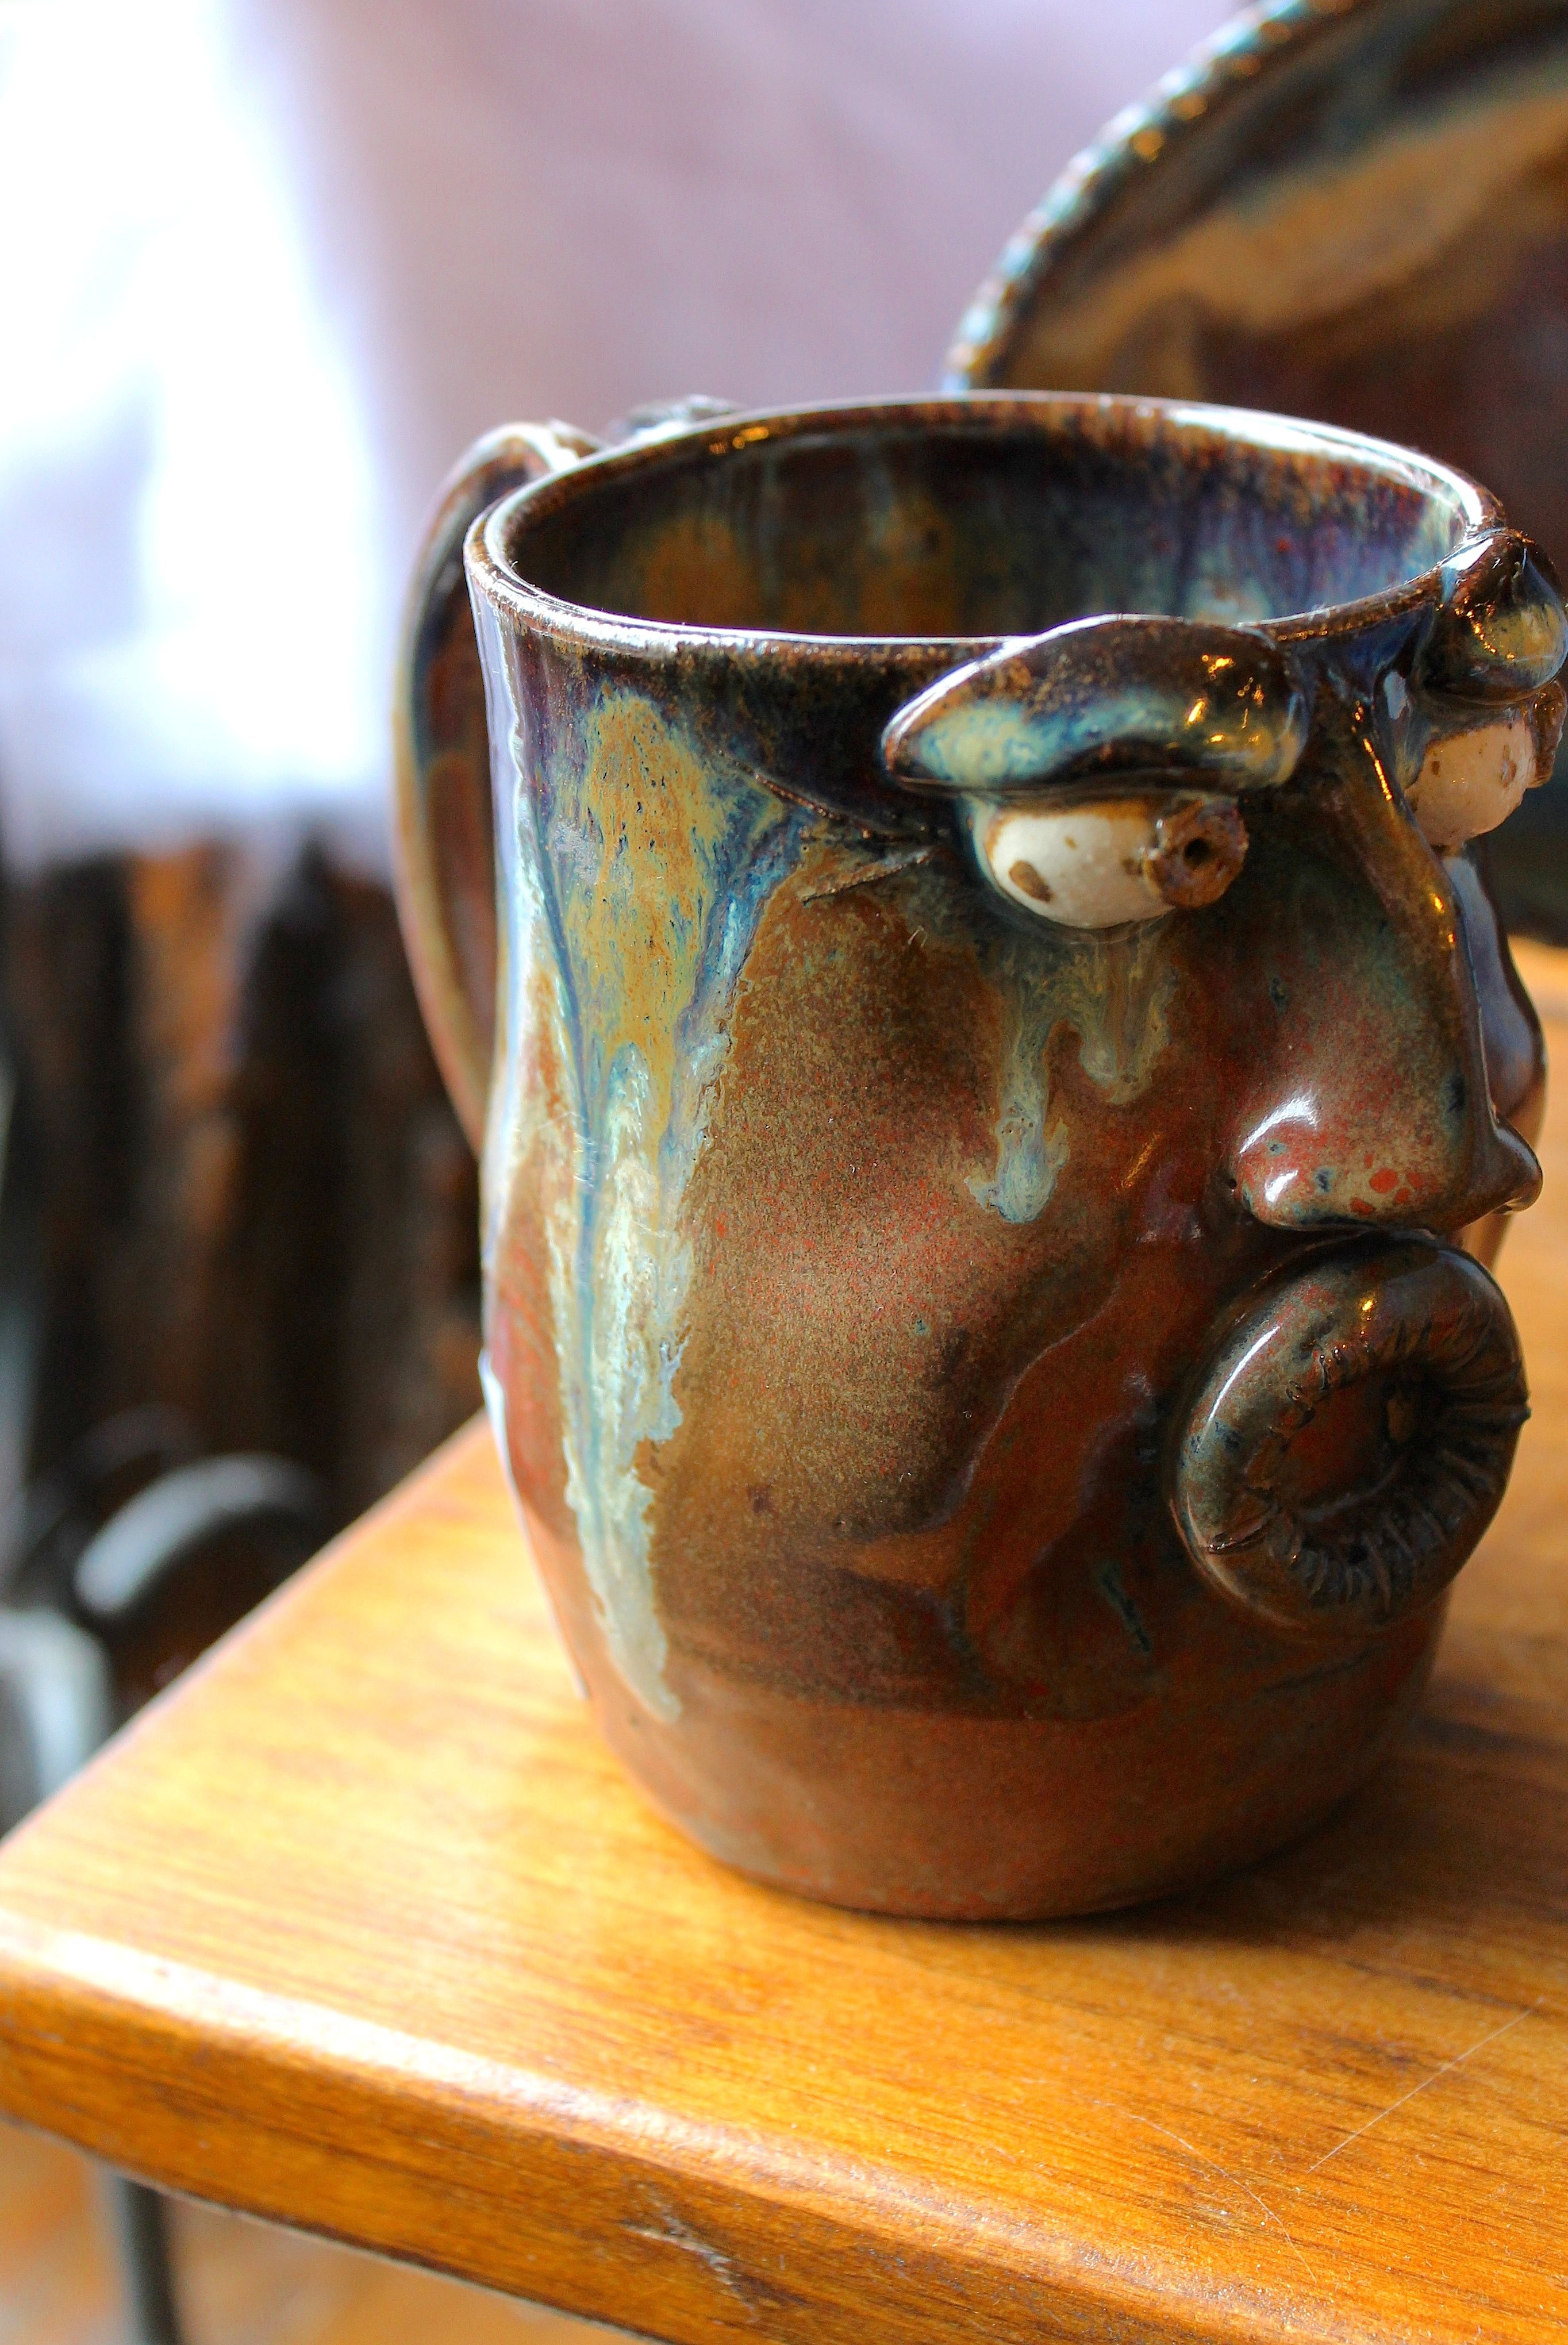 Find great pottery pieces at the Country Cottage in Downtown Dahlonega! // https://plus.google.com/116596678051799131224/about?gl=us&hl=en